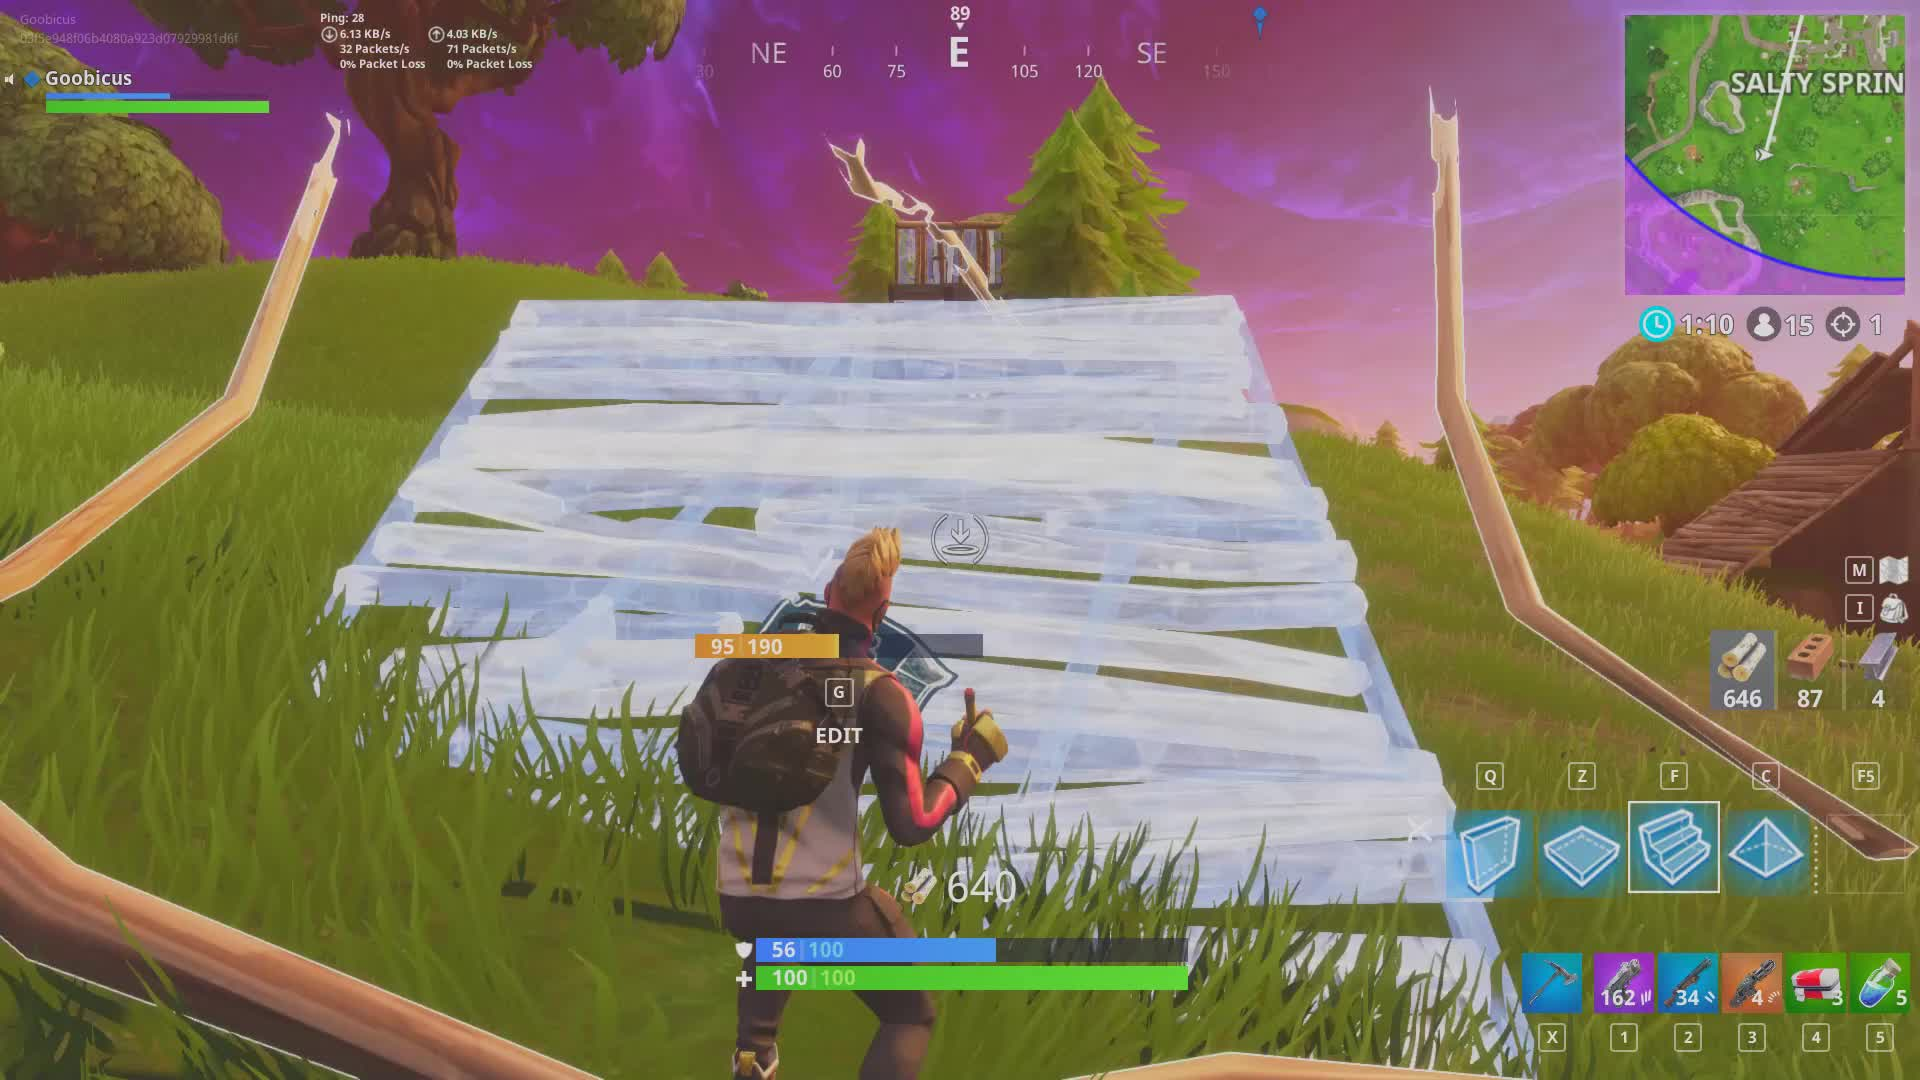 FortNiteBR, Fortnite, This Game Doo Doo GIFs